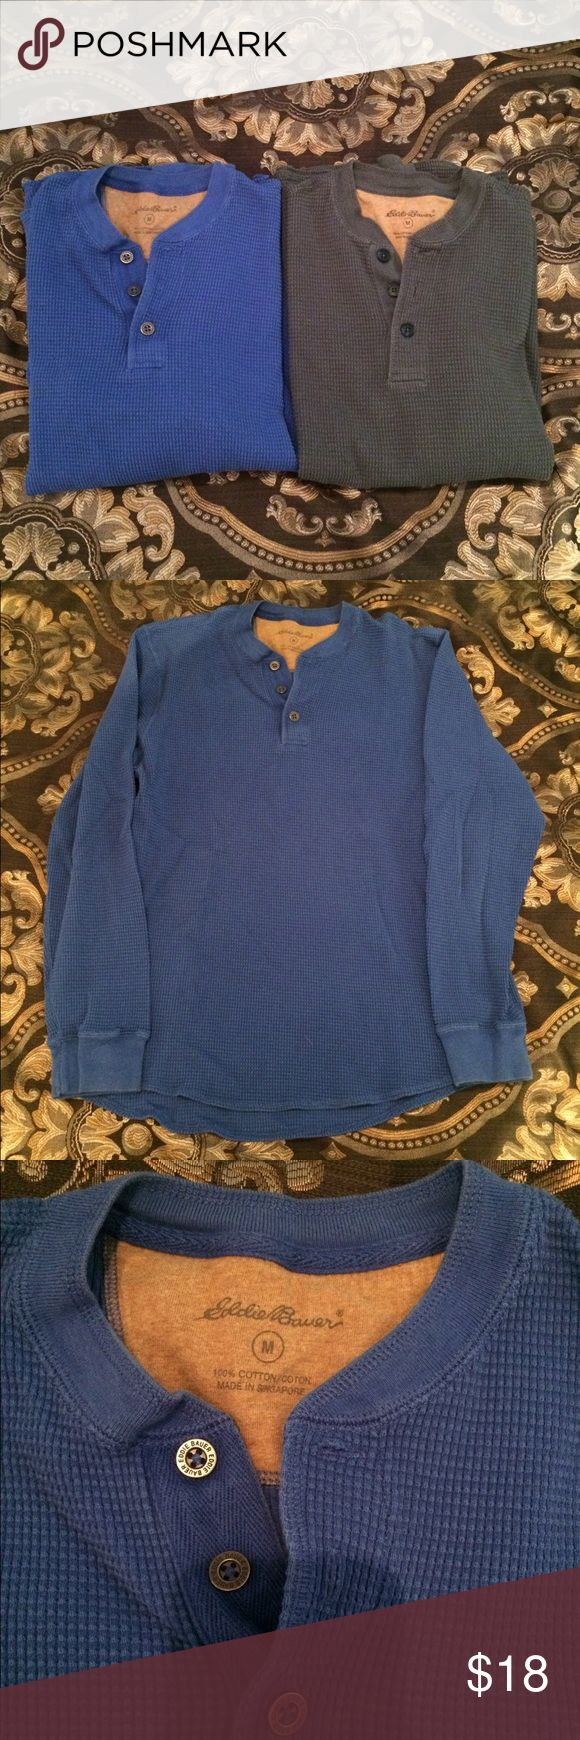 2 Eddie Bauer waffle shirts Awesome comfortable Eddie Bauer waffle shirts with rounded bottoms. Both a blue, ones a bright royal blue and the other is a blue grey. Great staples to any wardrobe. Been well warn and still in great shape. Make an offer! Eddie Bauer Sweaters Crewneck